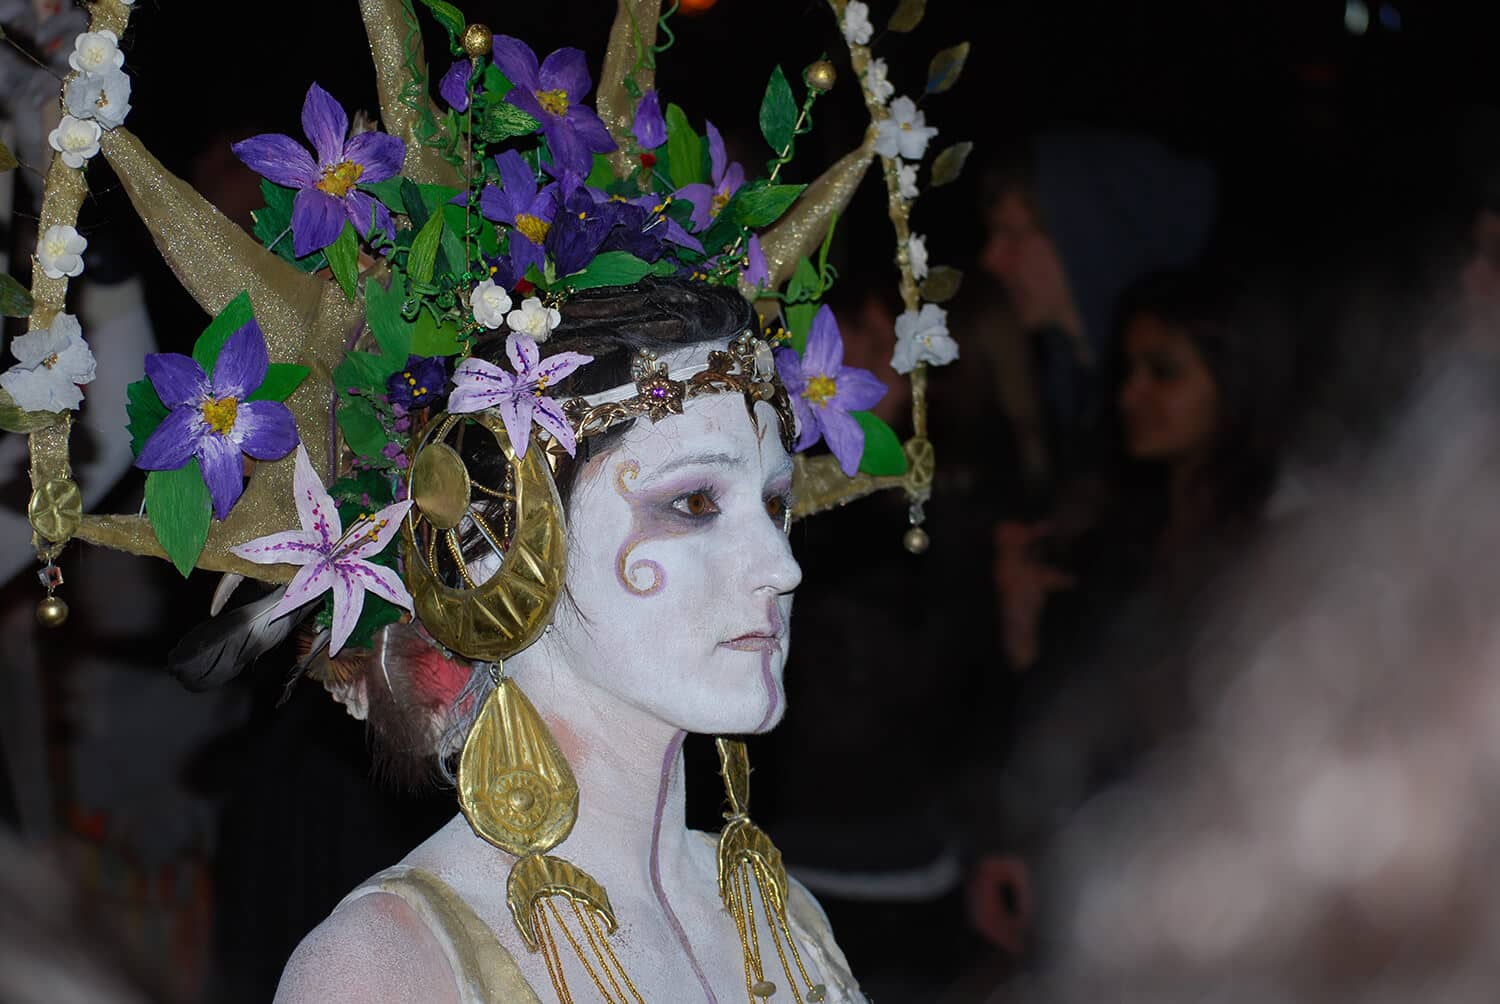 beltane fire festival 2016 in edinburgh